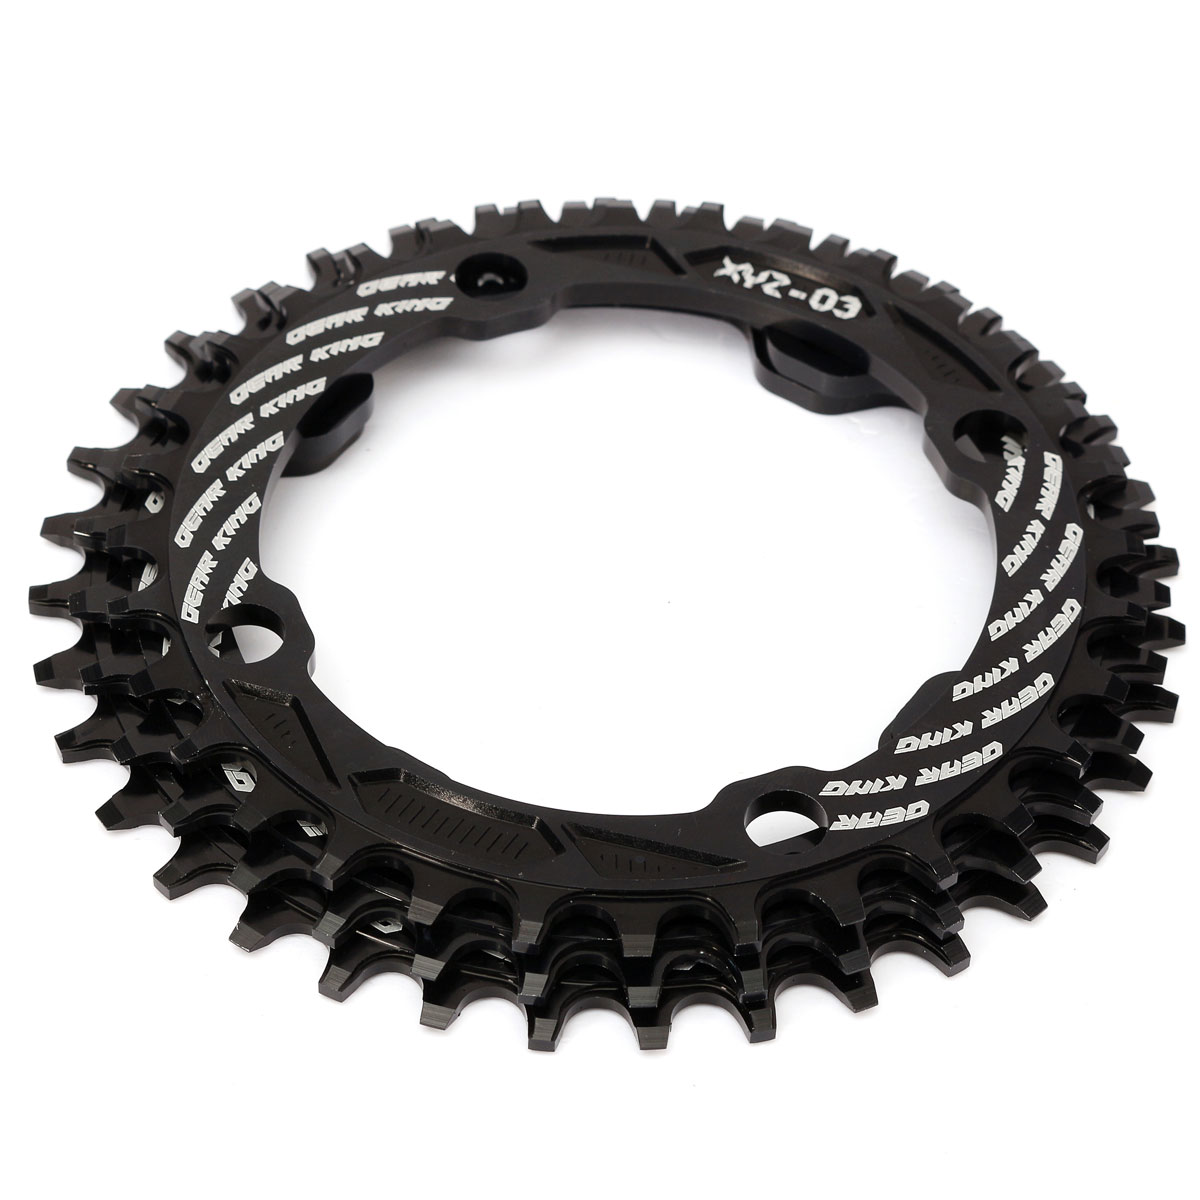 10X Bicycle Bike Chain Master Link Joint Connector Single Speed Quick-Clip